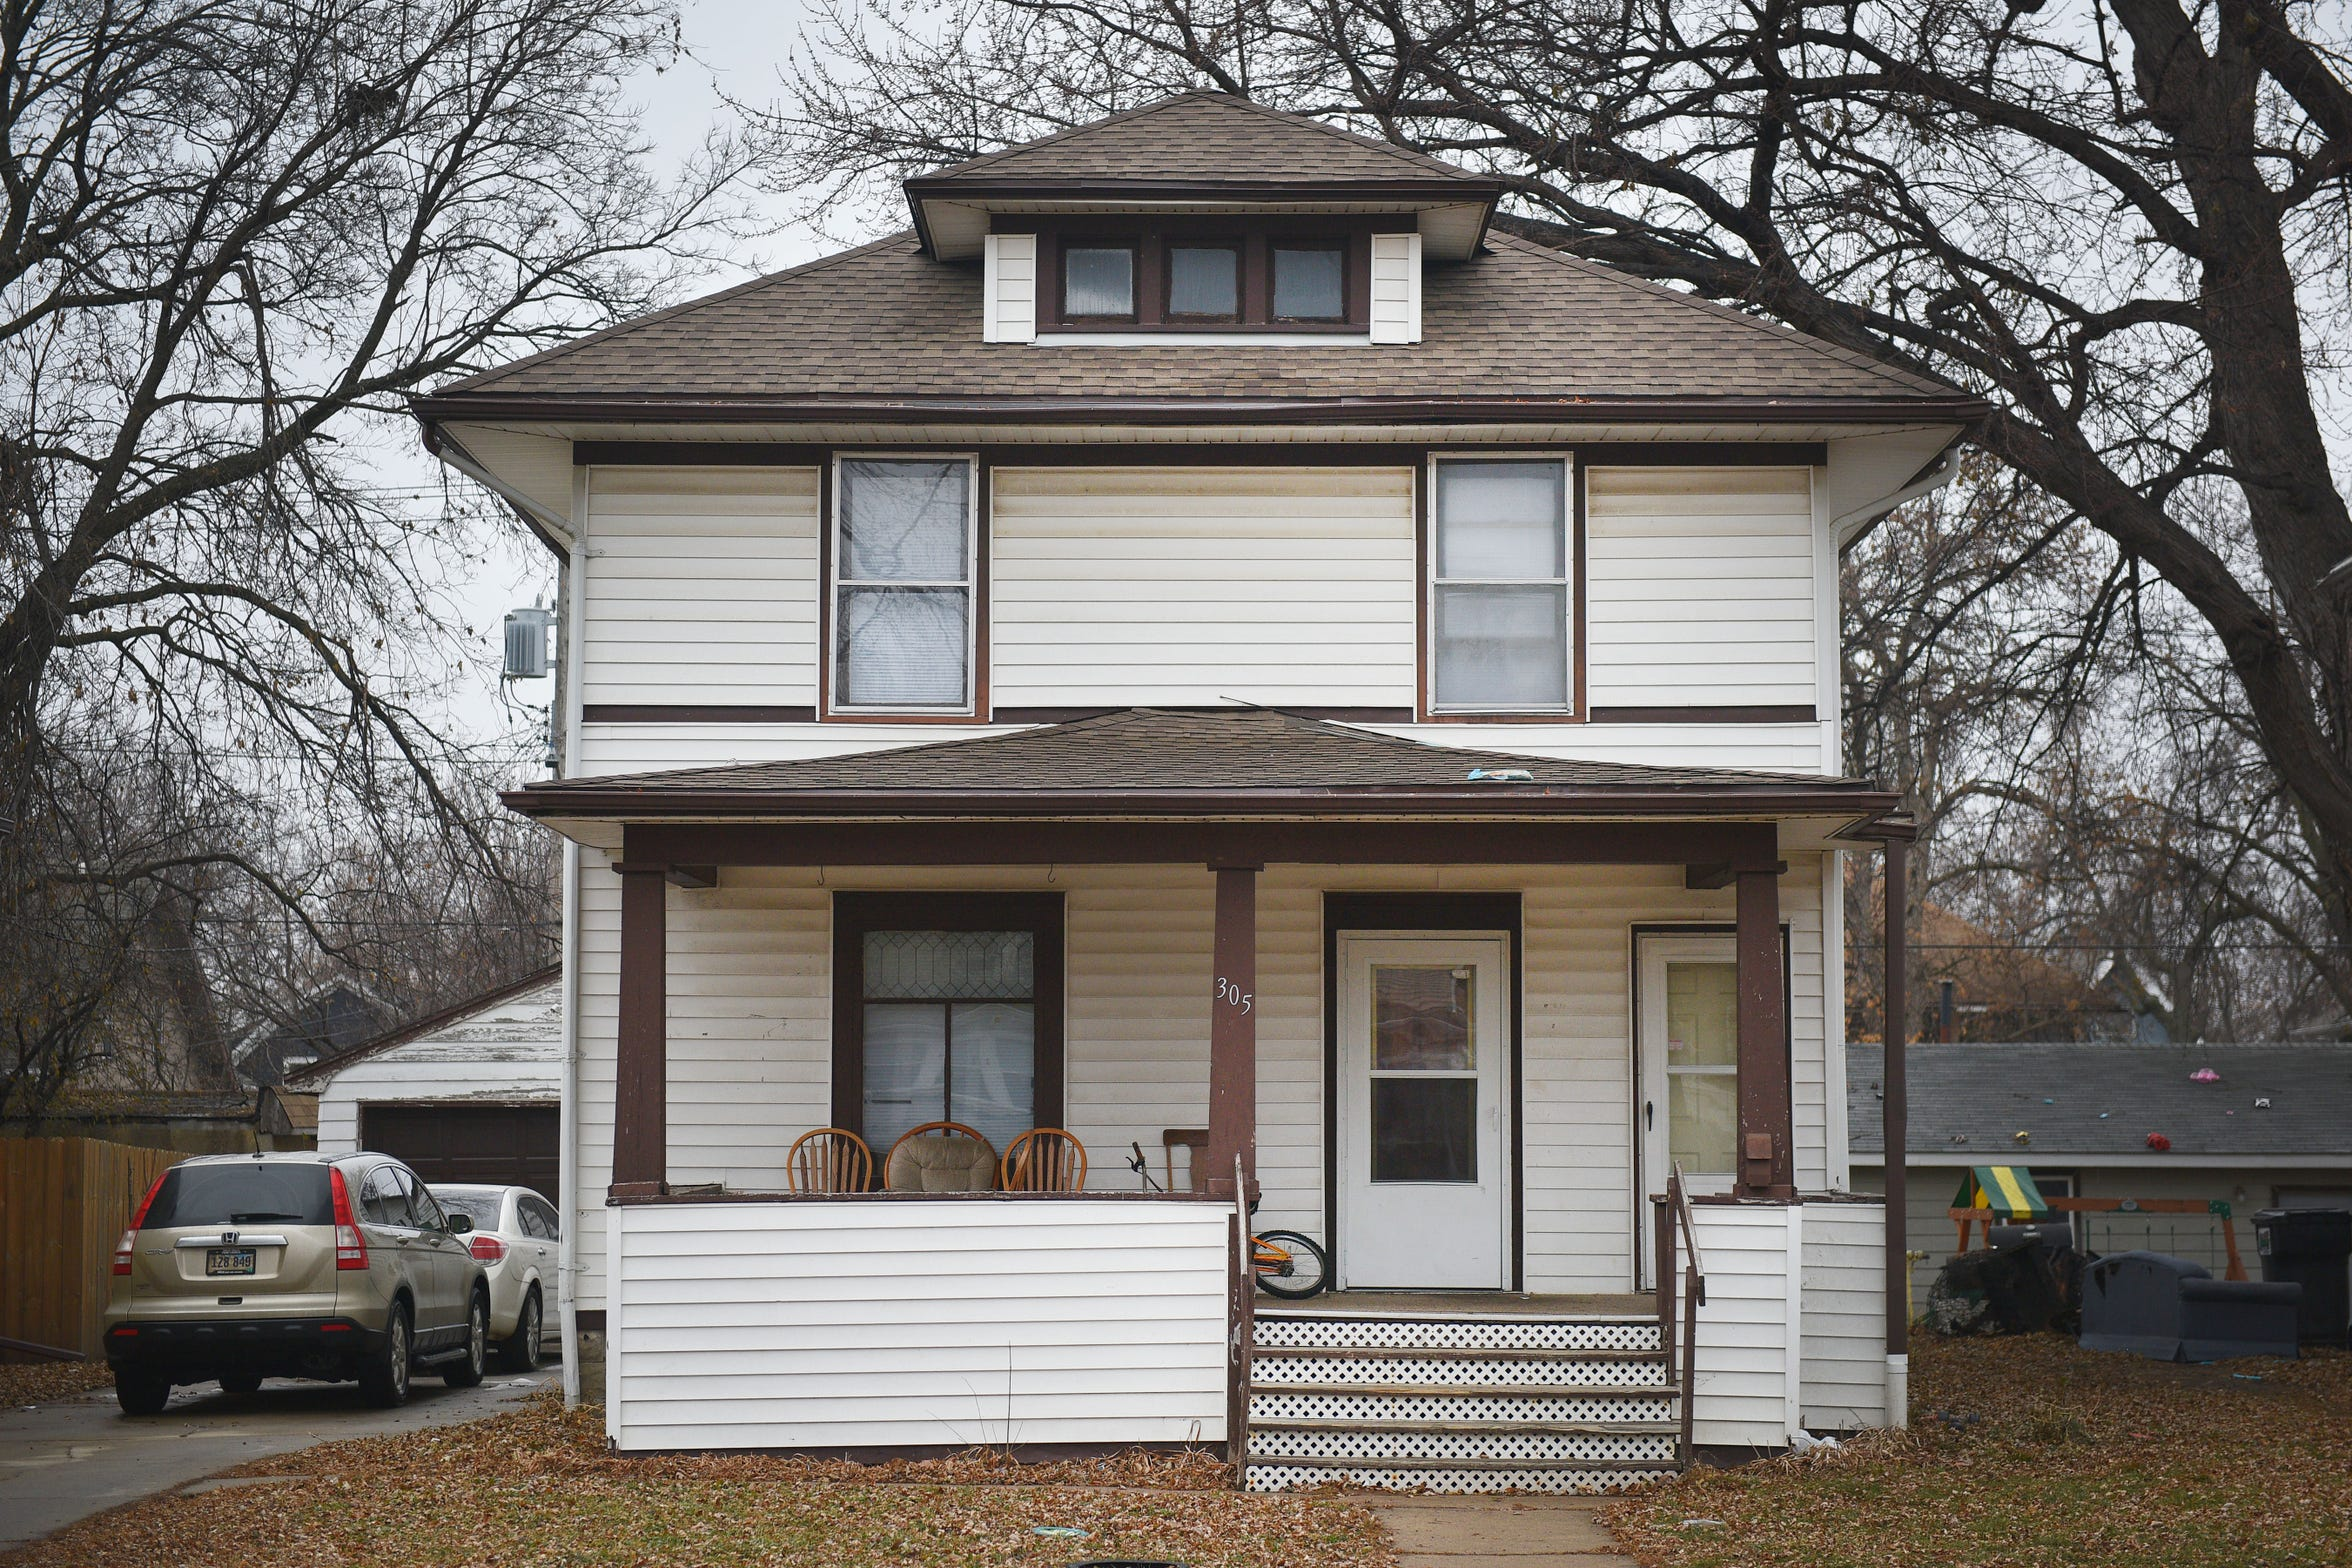 Ellabeth Lodermeier lived at 305 N. Indiana Ave. before she went missing in 1974 in Sioux Falls. Friday, Nov. 30.